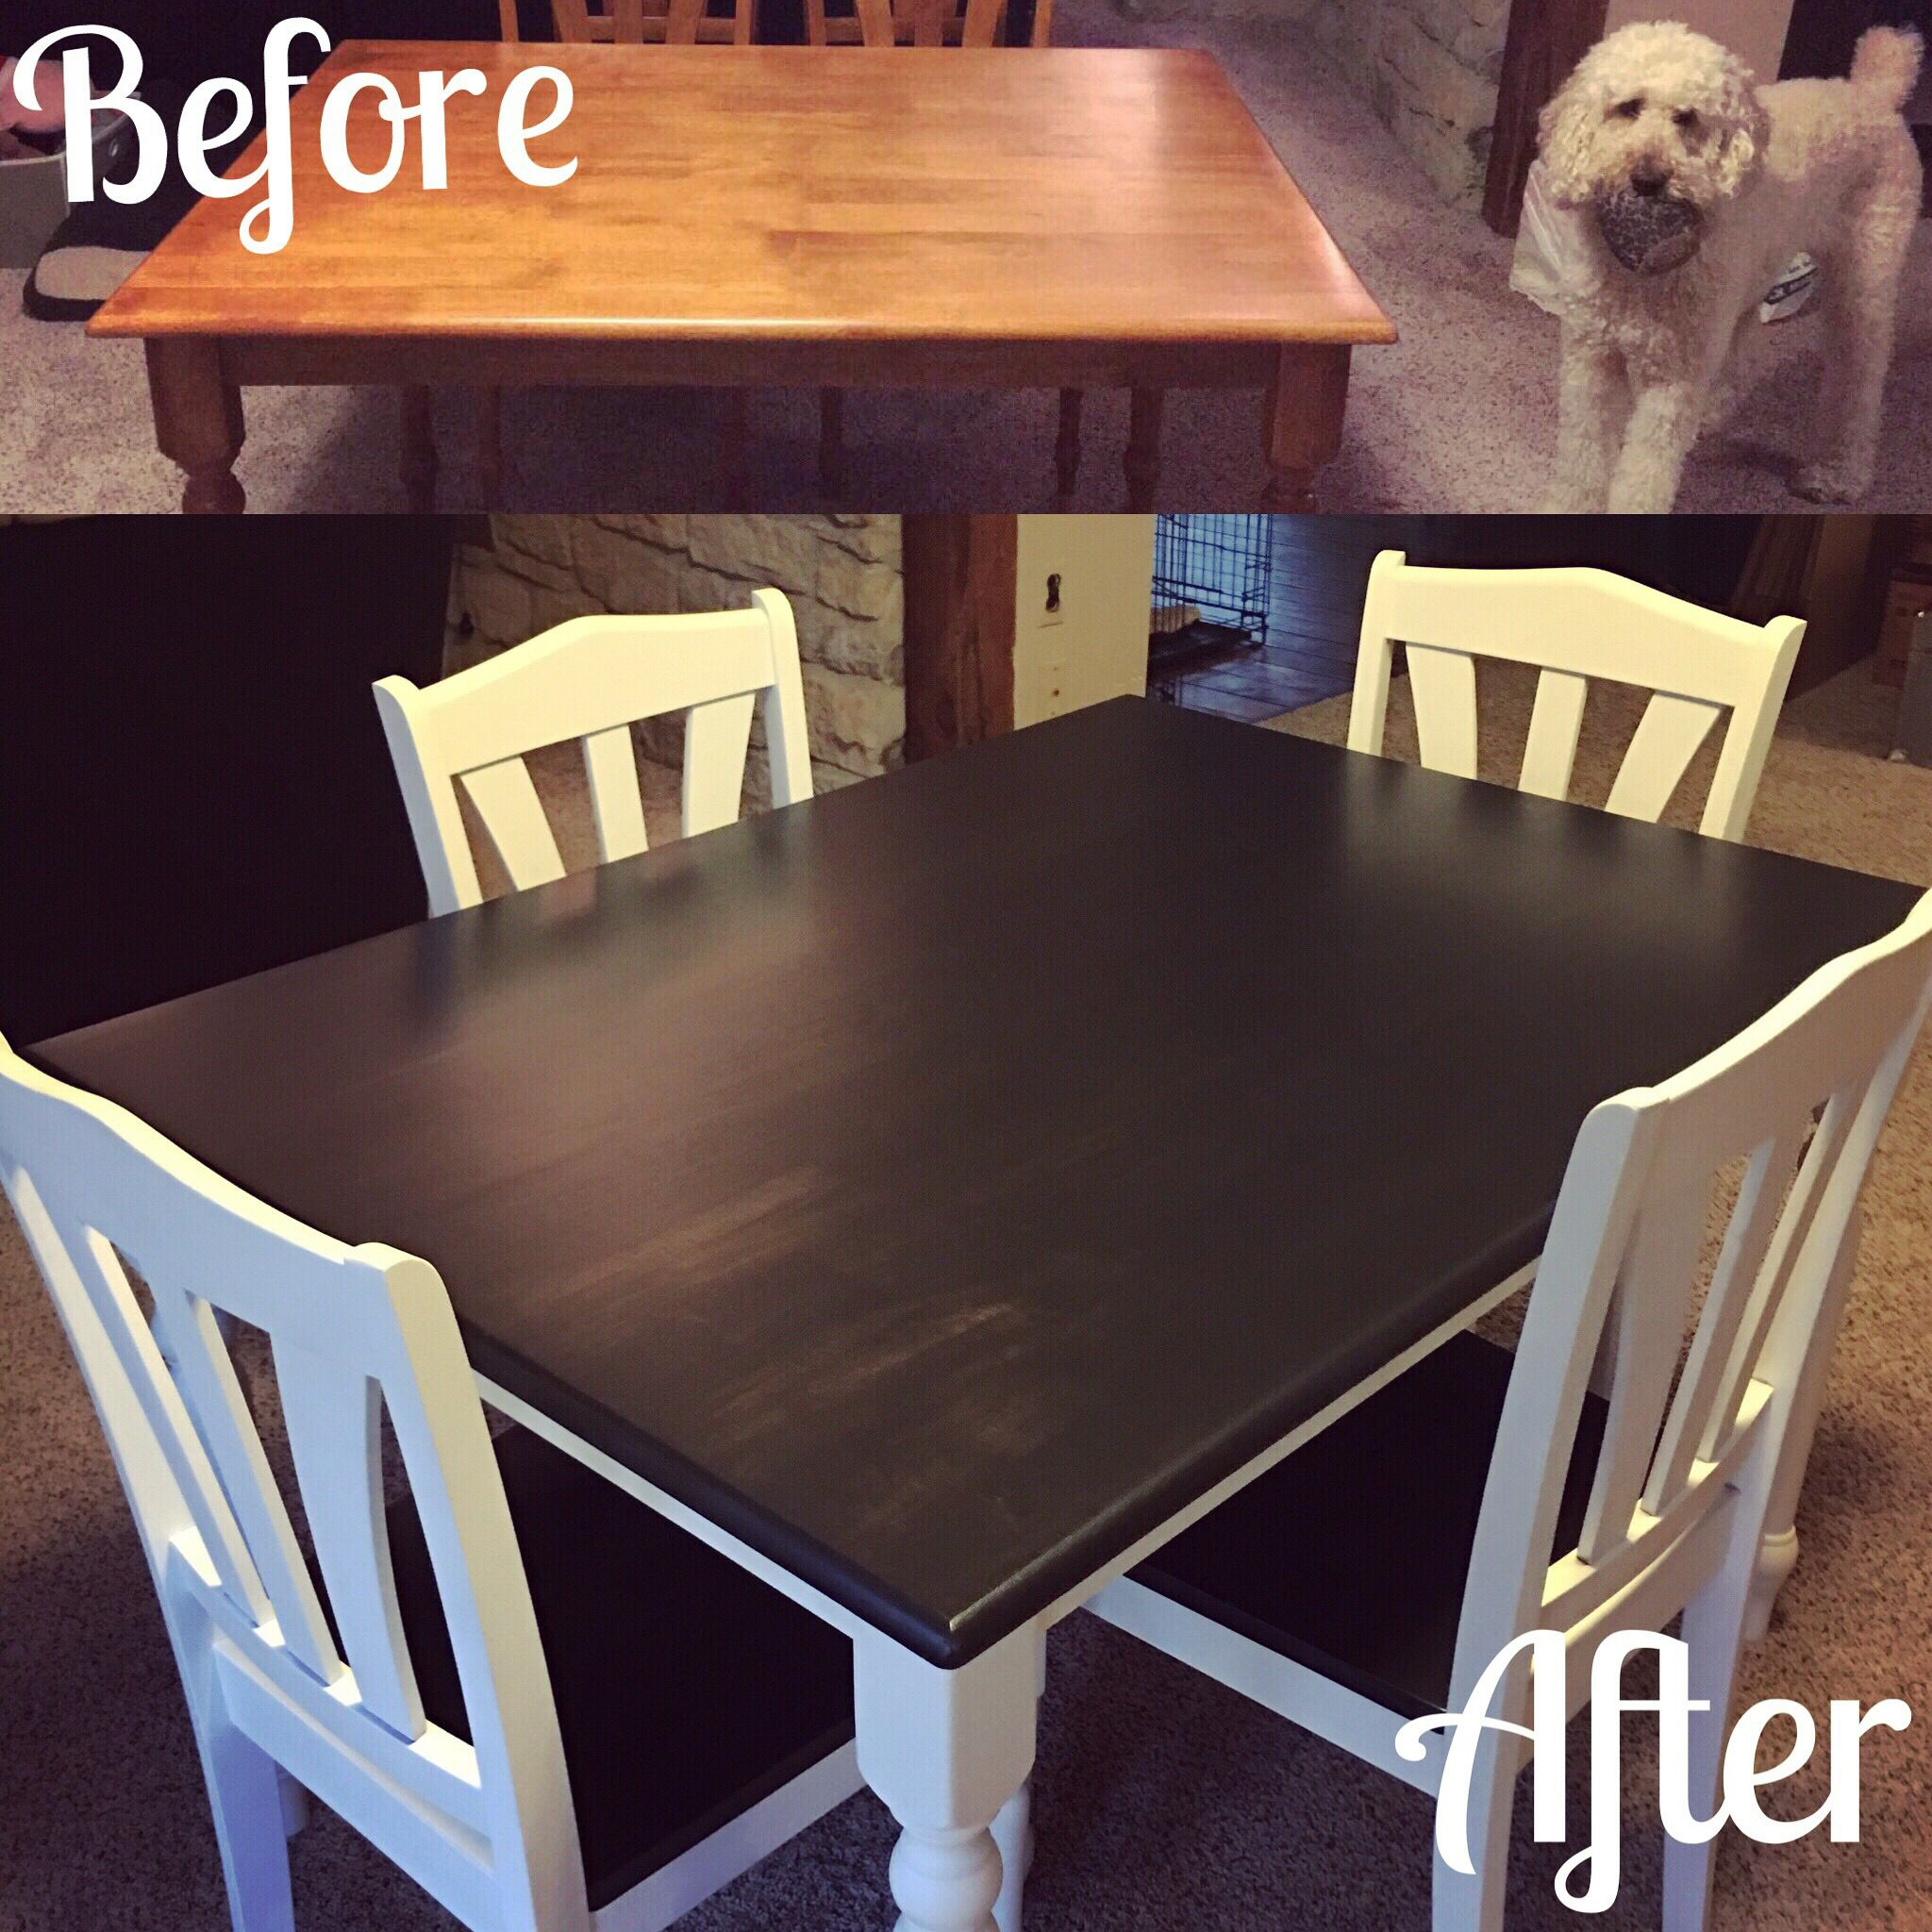 Used Kitchen Tables Black Canisters For Our Table Makeover We Rustoleum Chalk Paint In Linen White And Ebony Wood Stain Sealed It All With Matte Varnish